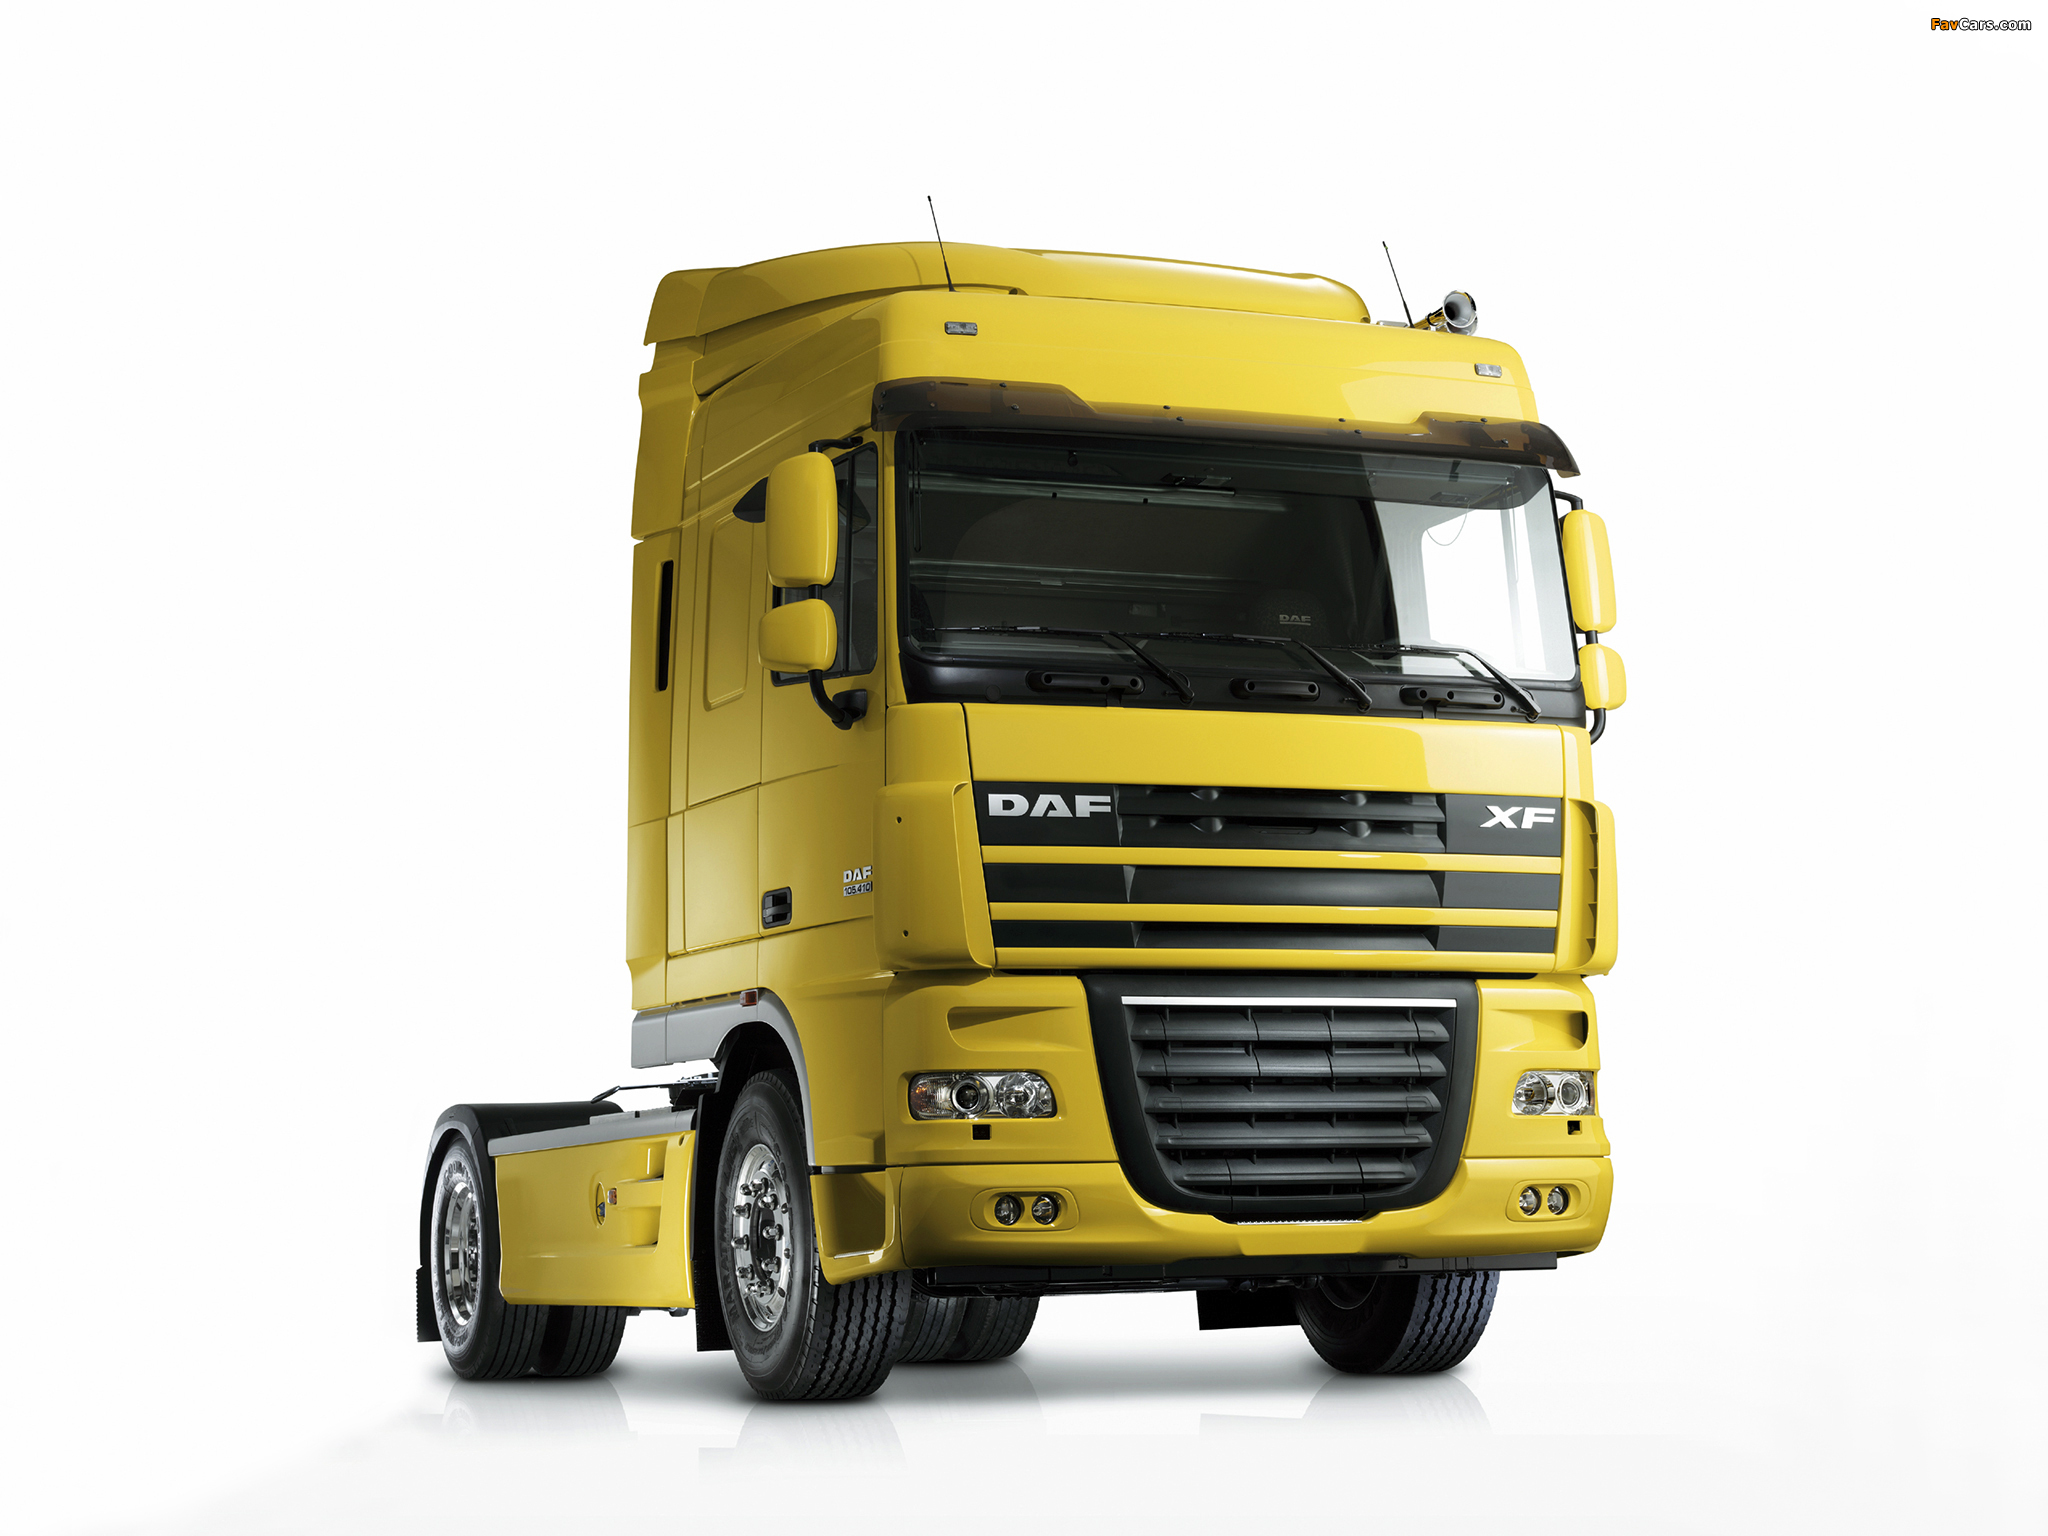 DAF XF105 2006 wallpapers (2048 x 1536)